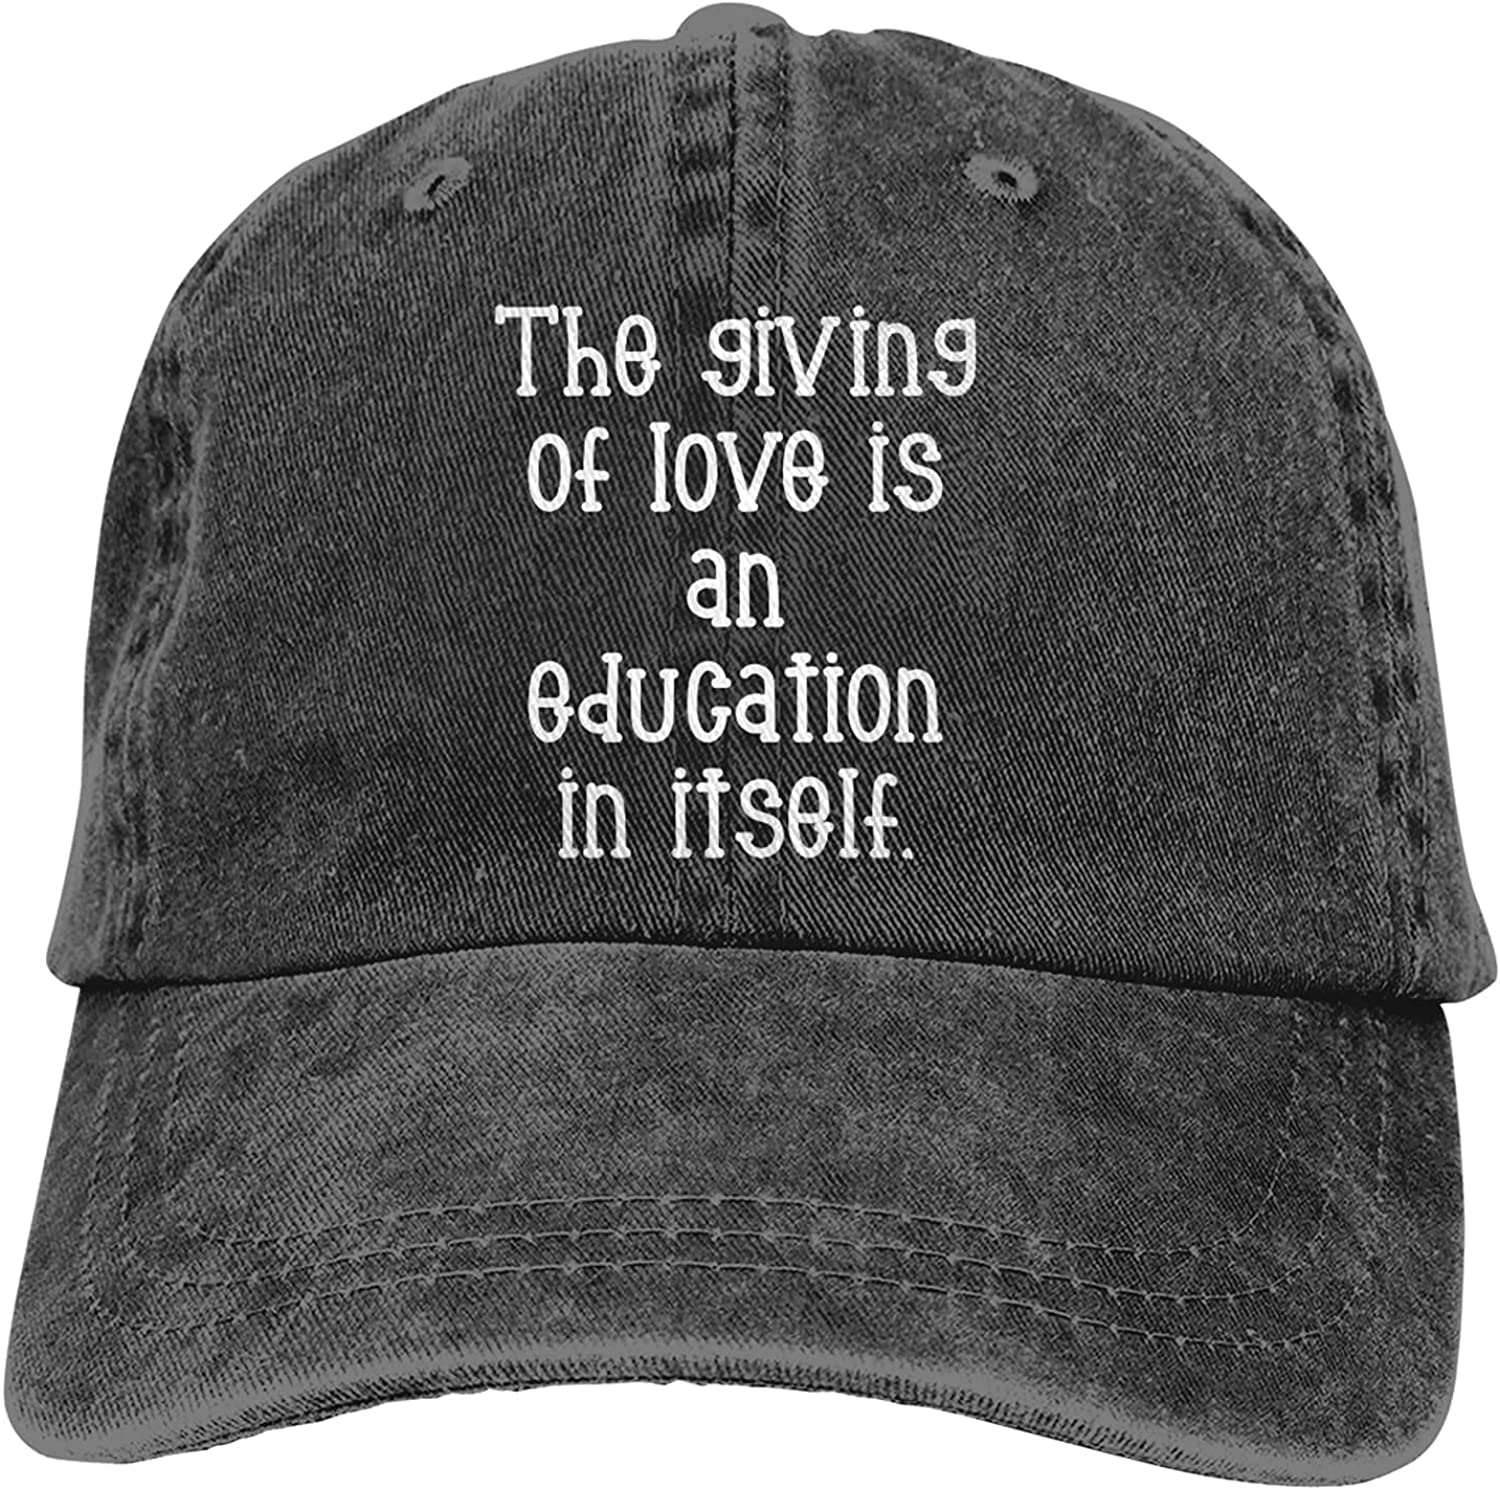 The Giving of Love is an Education in Itself Hat Adjustable Washed Unisex Dad Hat Cowboy Cap Denim Cap Baseball Cap